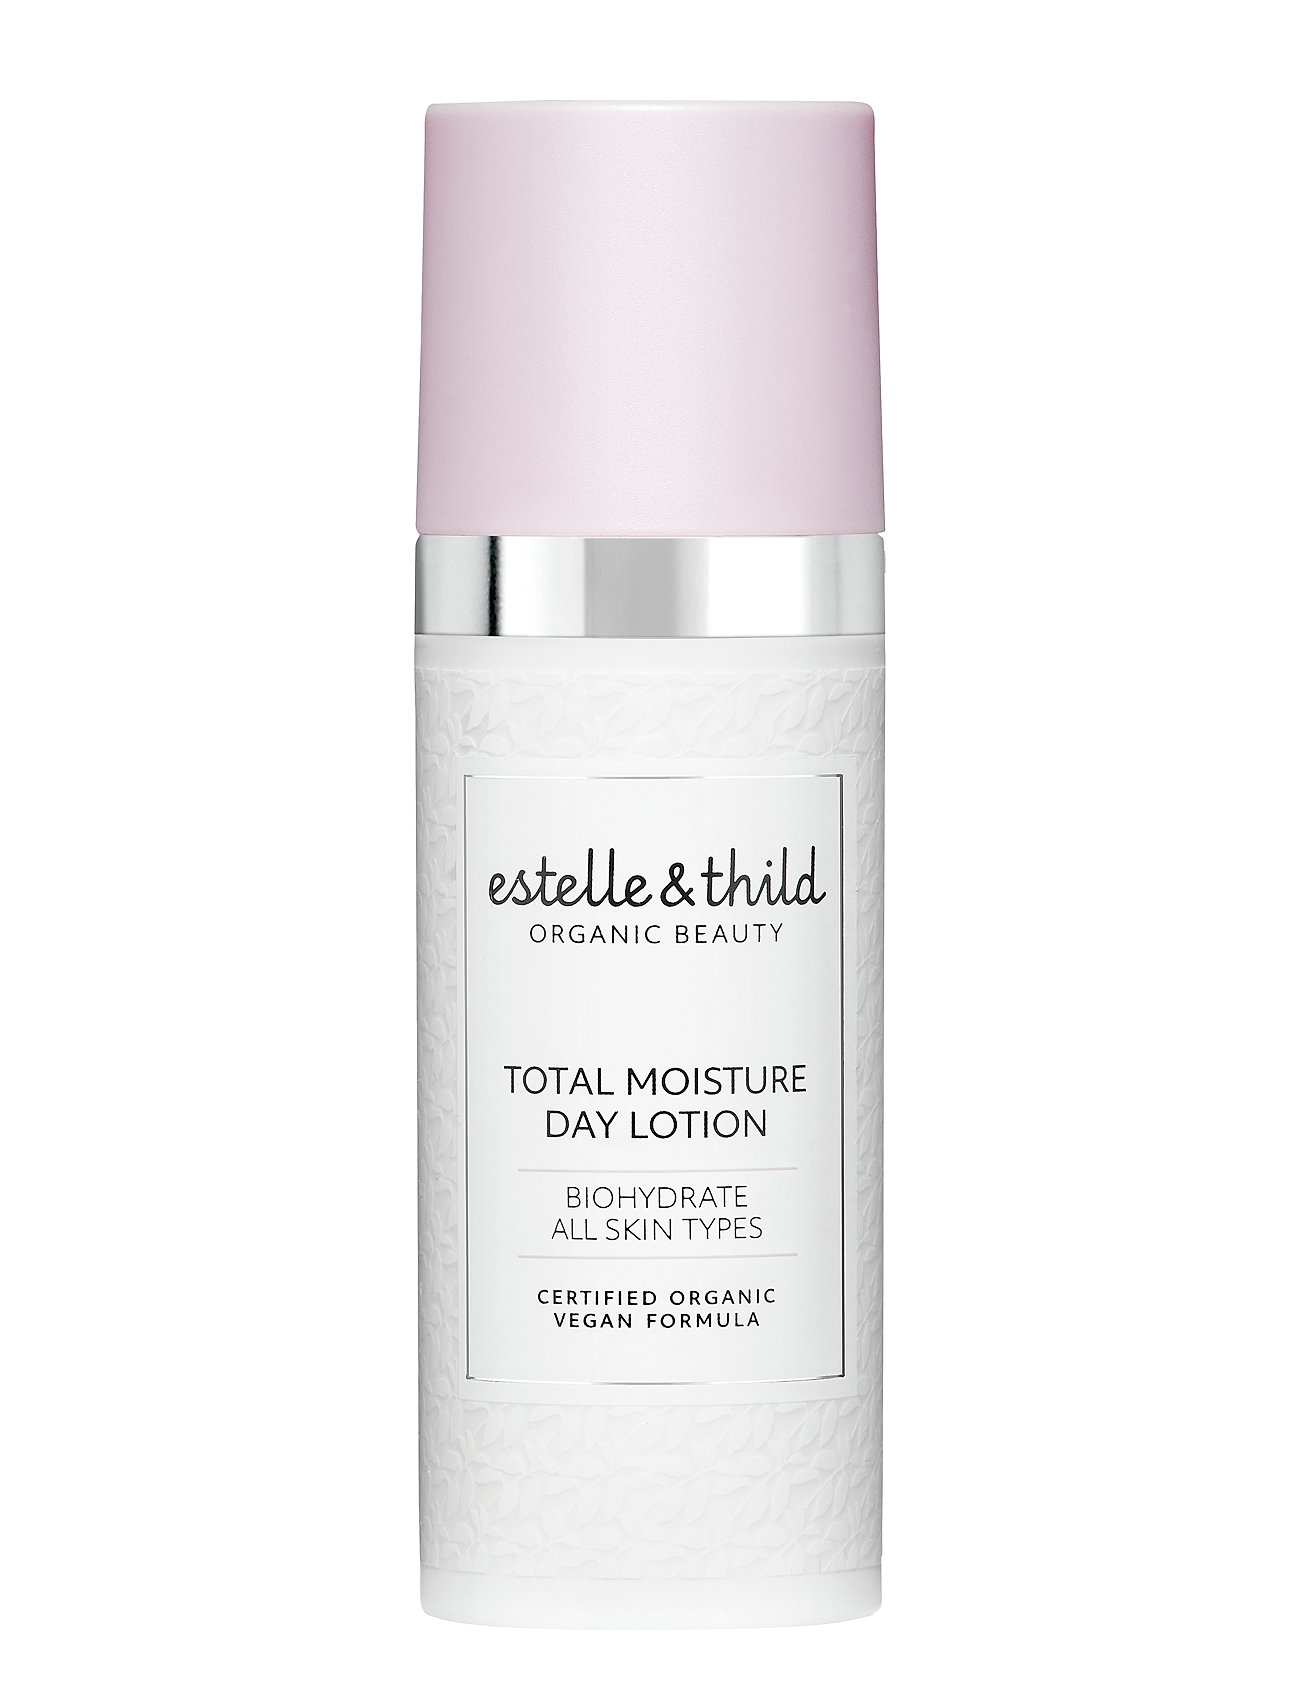 Biohydrate Total Moisture Day Lotion - Estelle & Thild